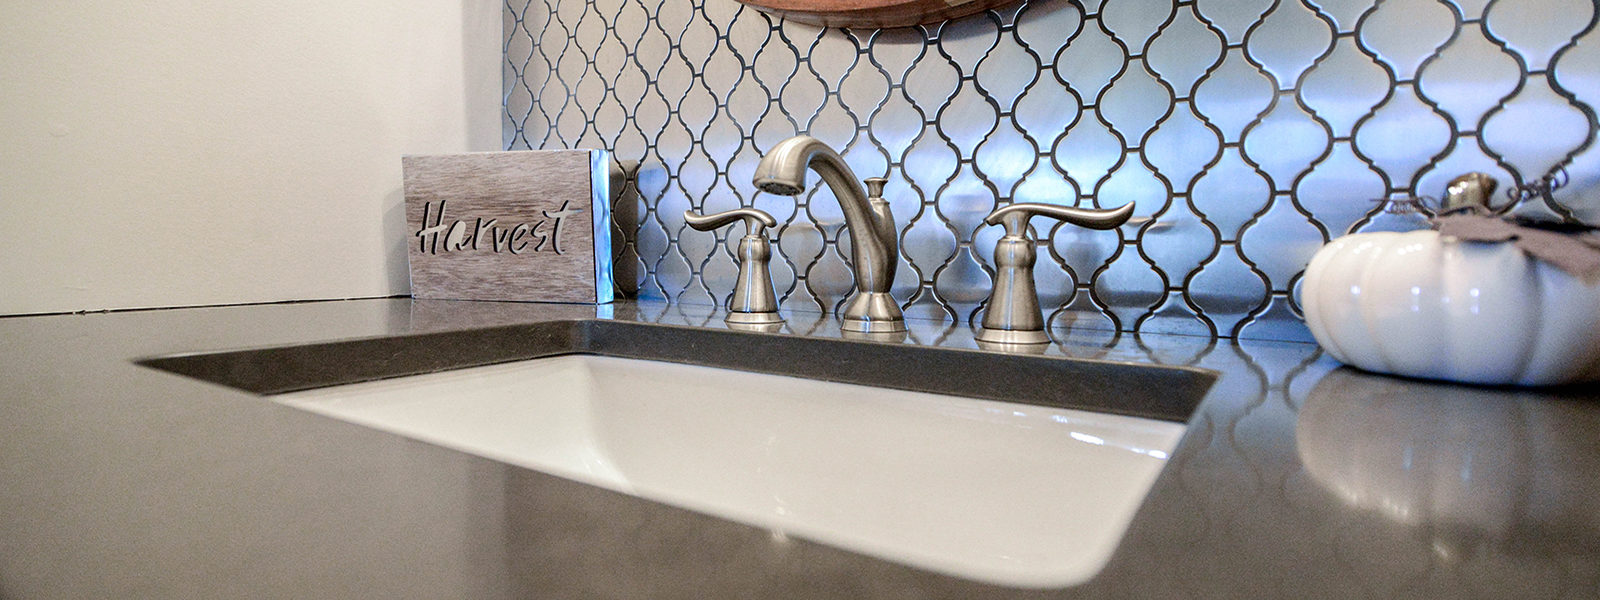 Avoid Trendy: Keys to Keeping a Bathroom Classy